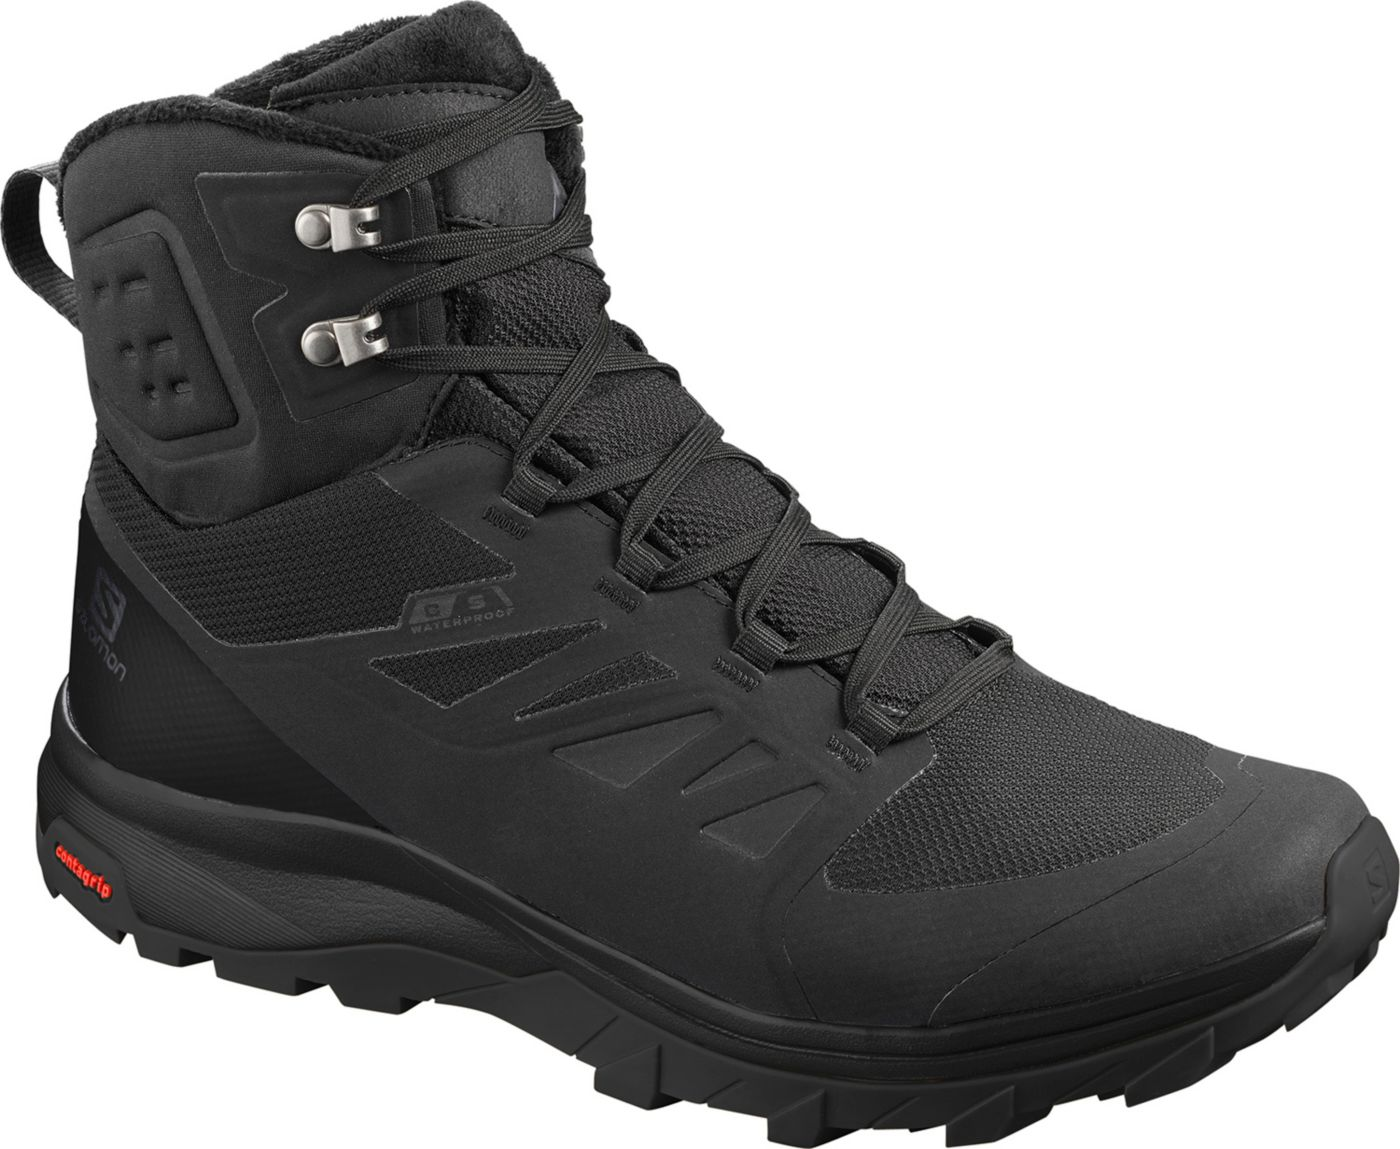 Salomon Men's OUTBlast 200g Waterproof Winter Boots